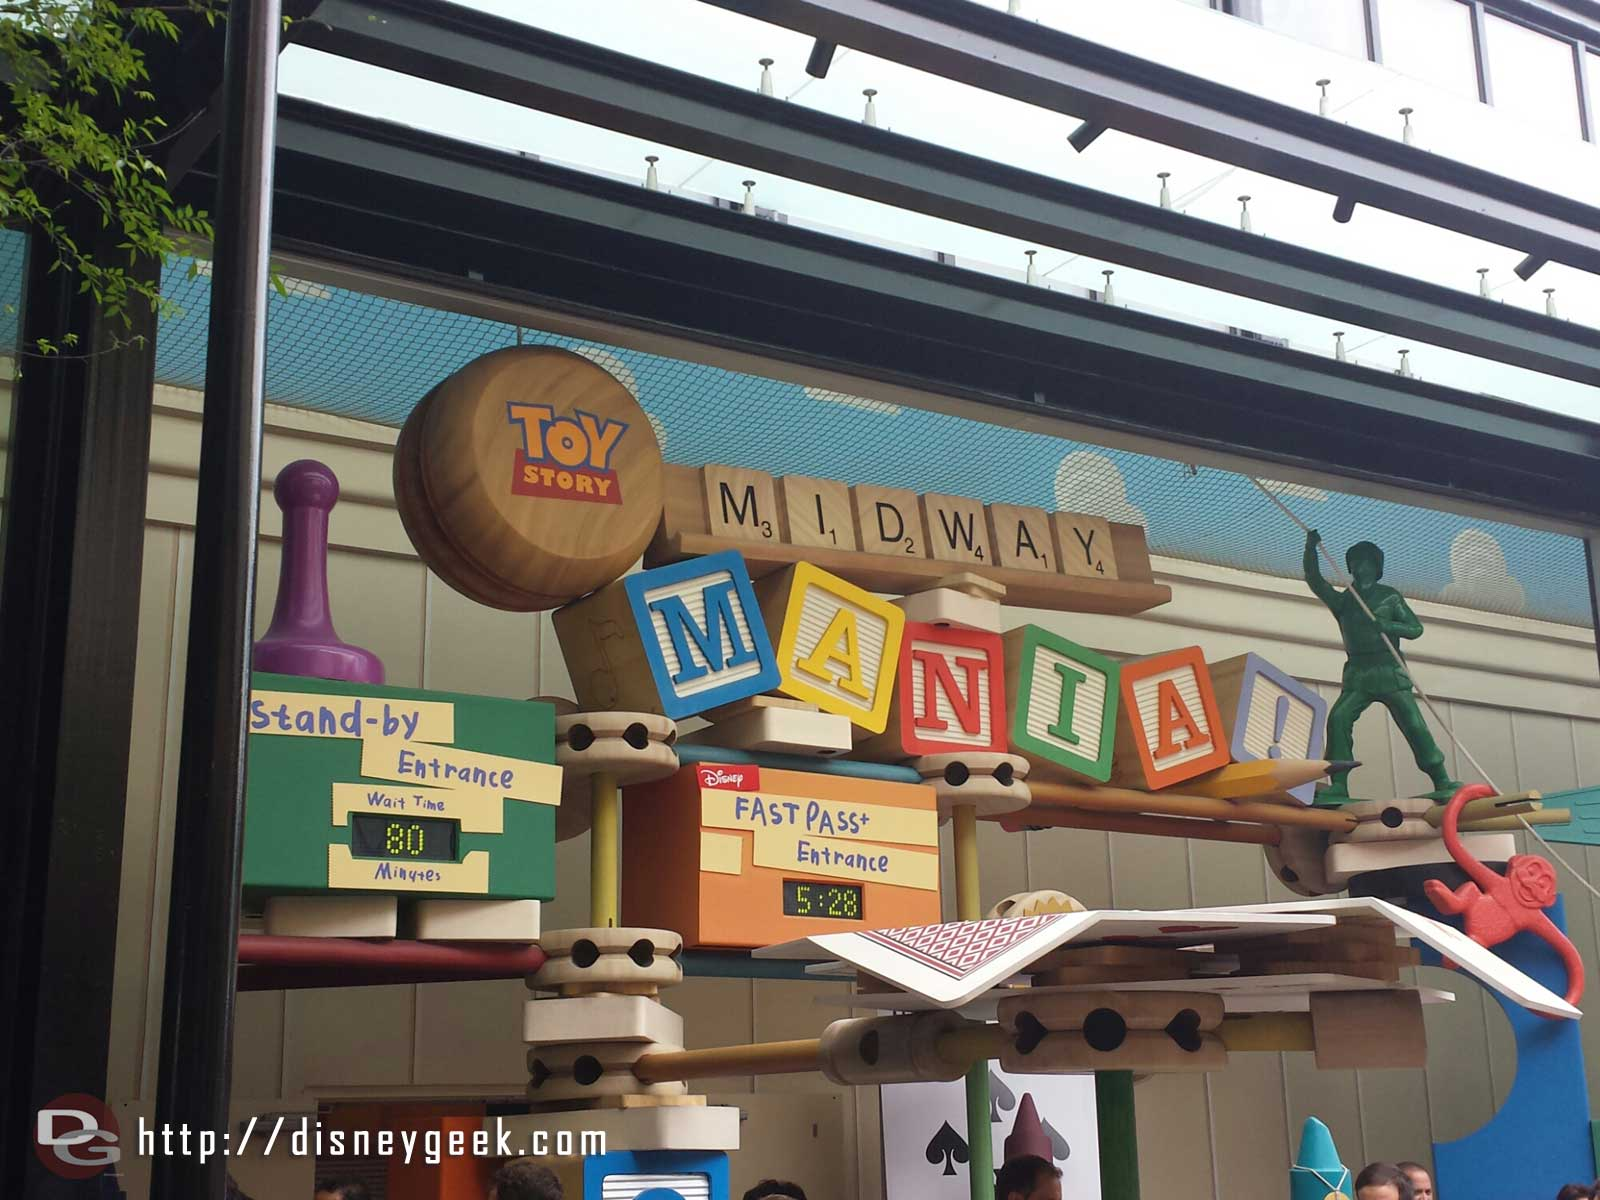 Toy Story has a posted 80min wait this evening